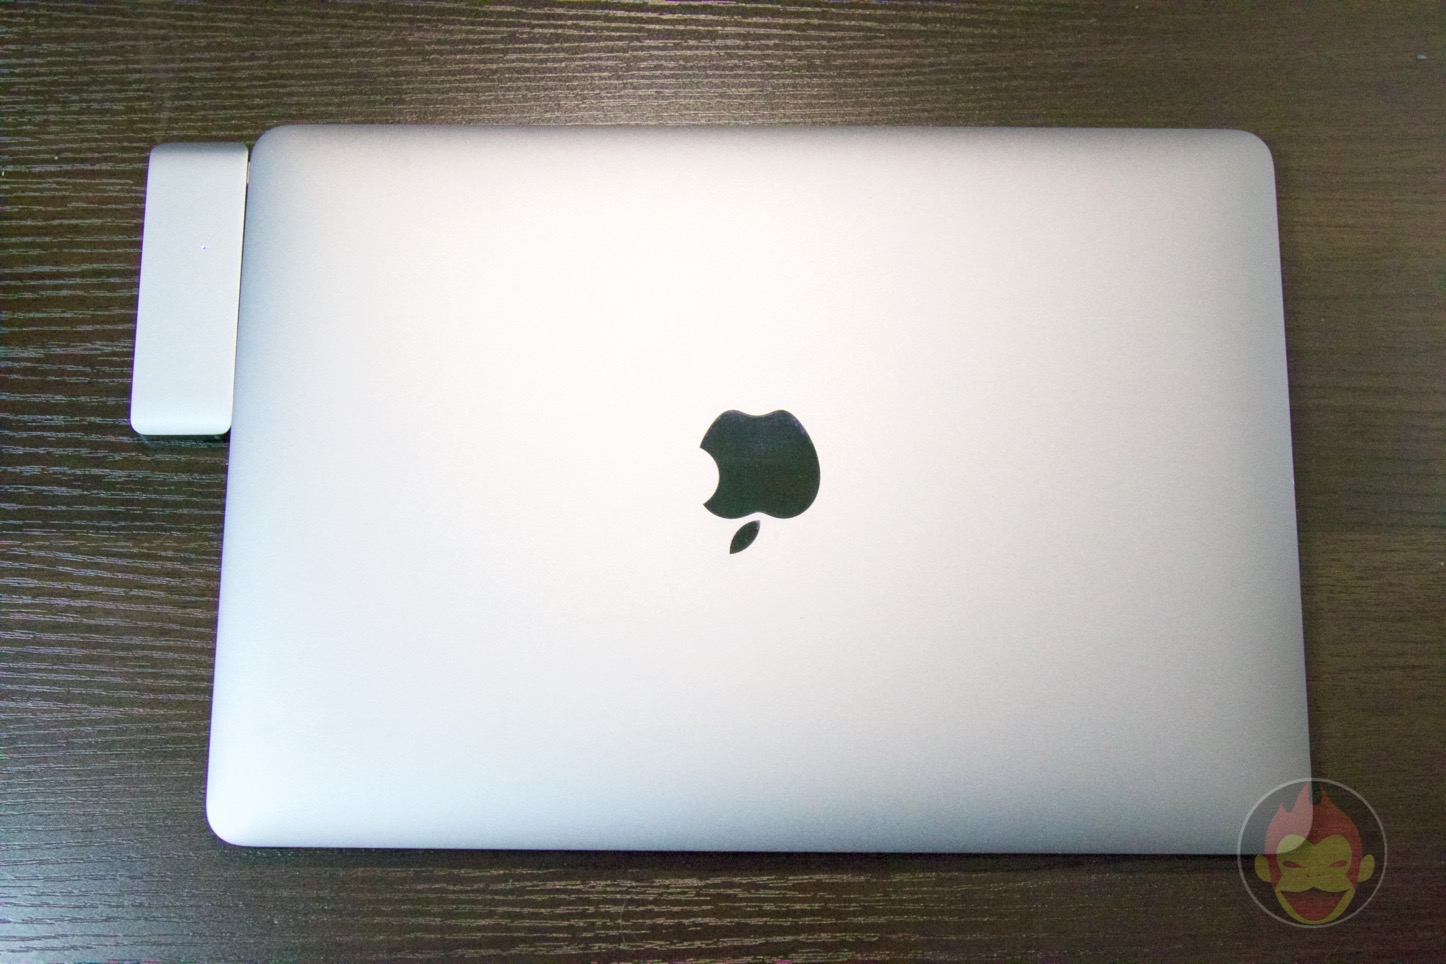 Satechi-MacBook-Type-C-3in1-05.jpg